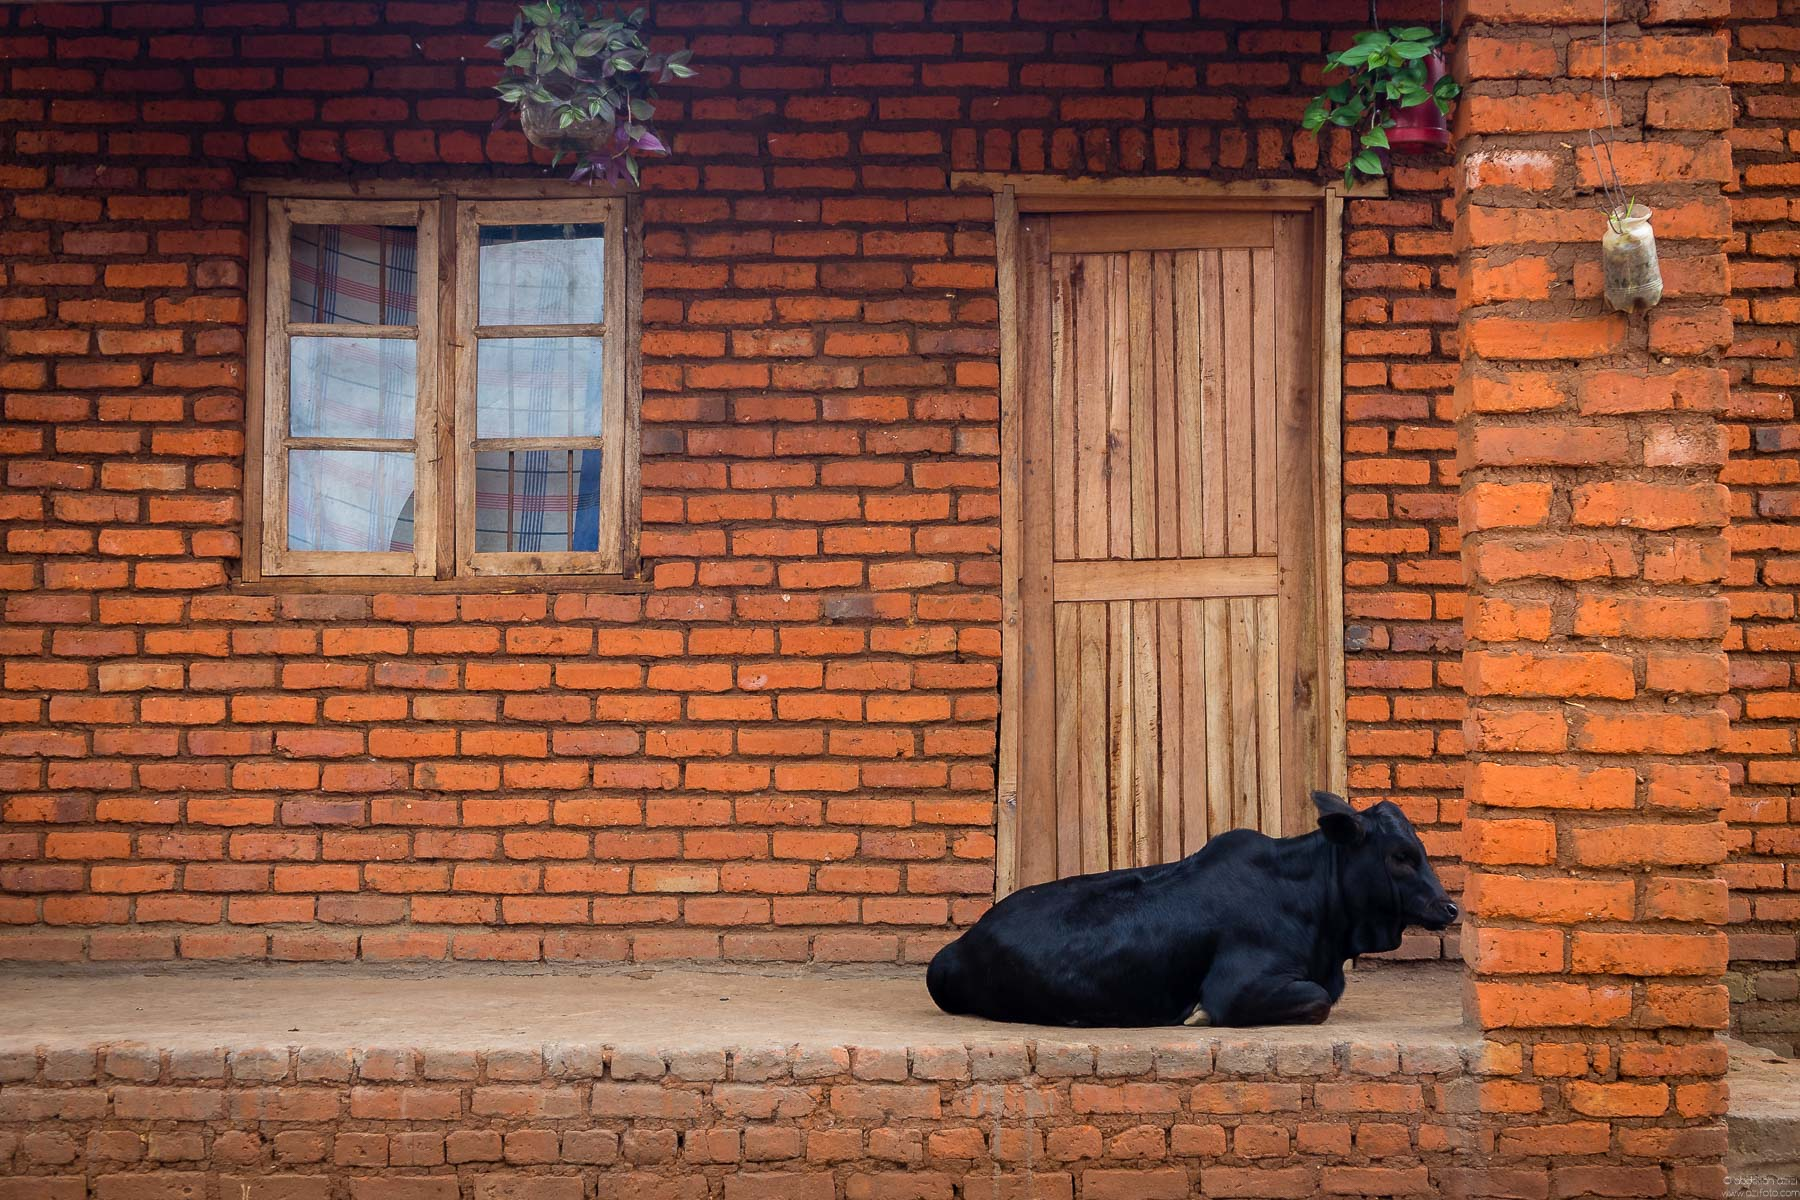 Cow in font of a house - malawi